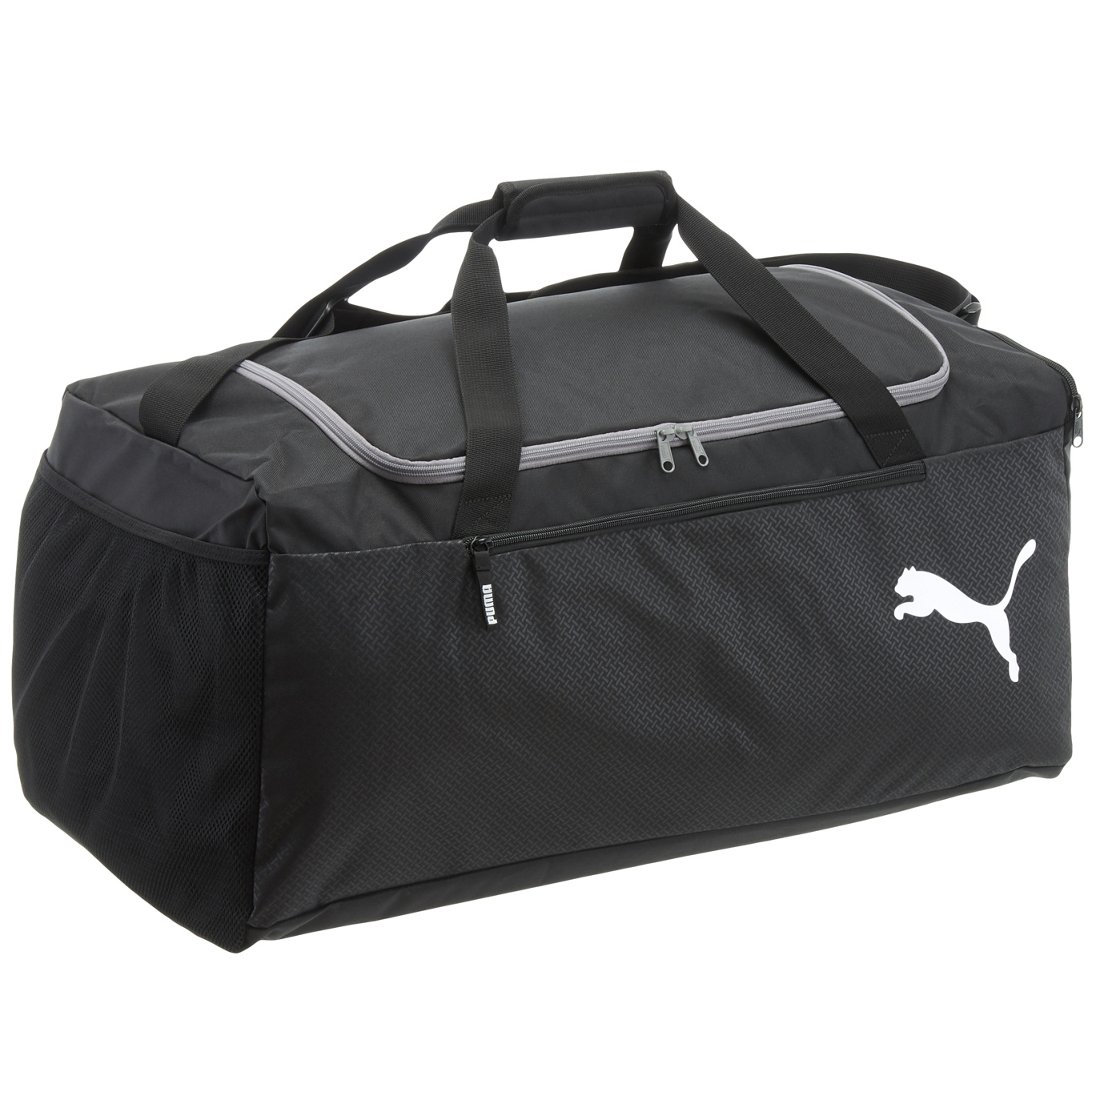 Puma Fundamentals Sports Bag L Sporttasche 67 cm - black